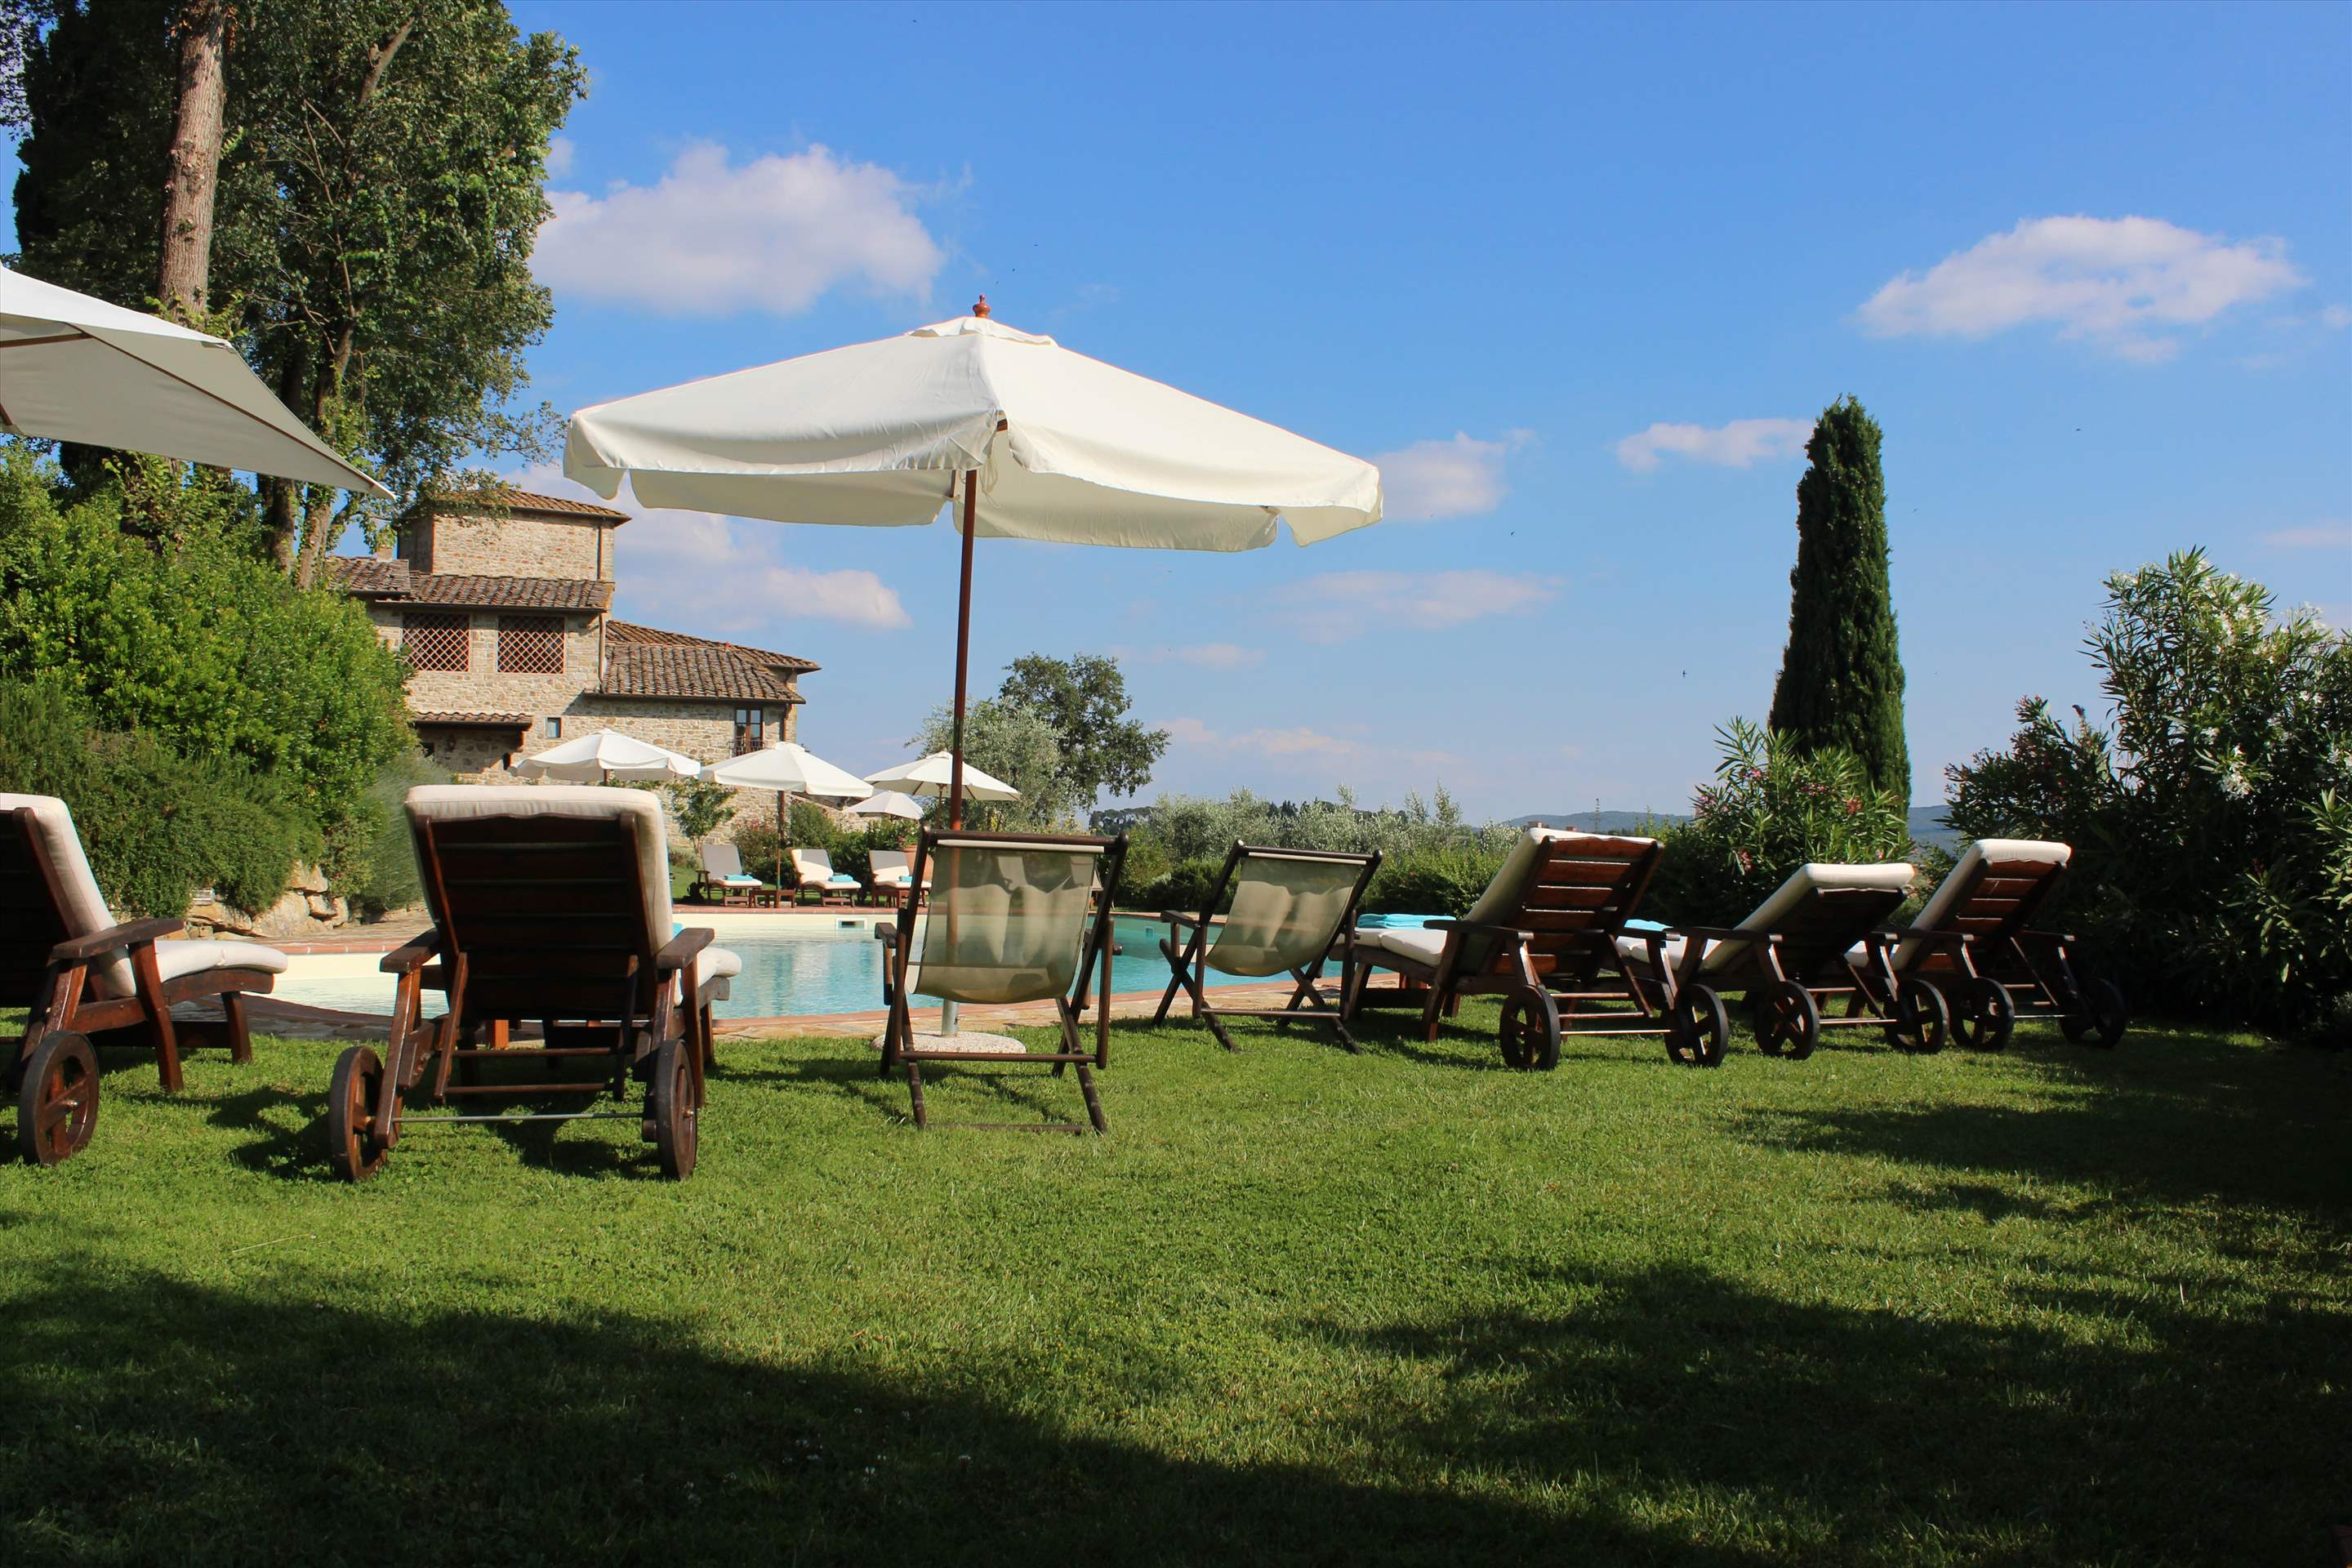 Apartment Limonaia, 1 bedroom apartment in Chianti & Countryside, Tuscany Photo #8